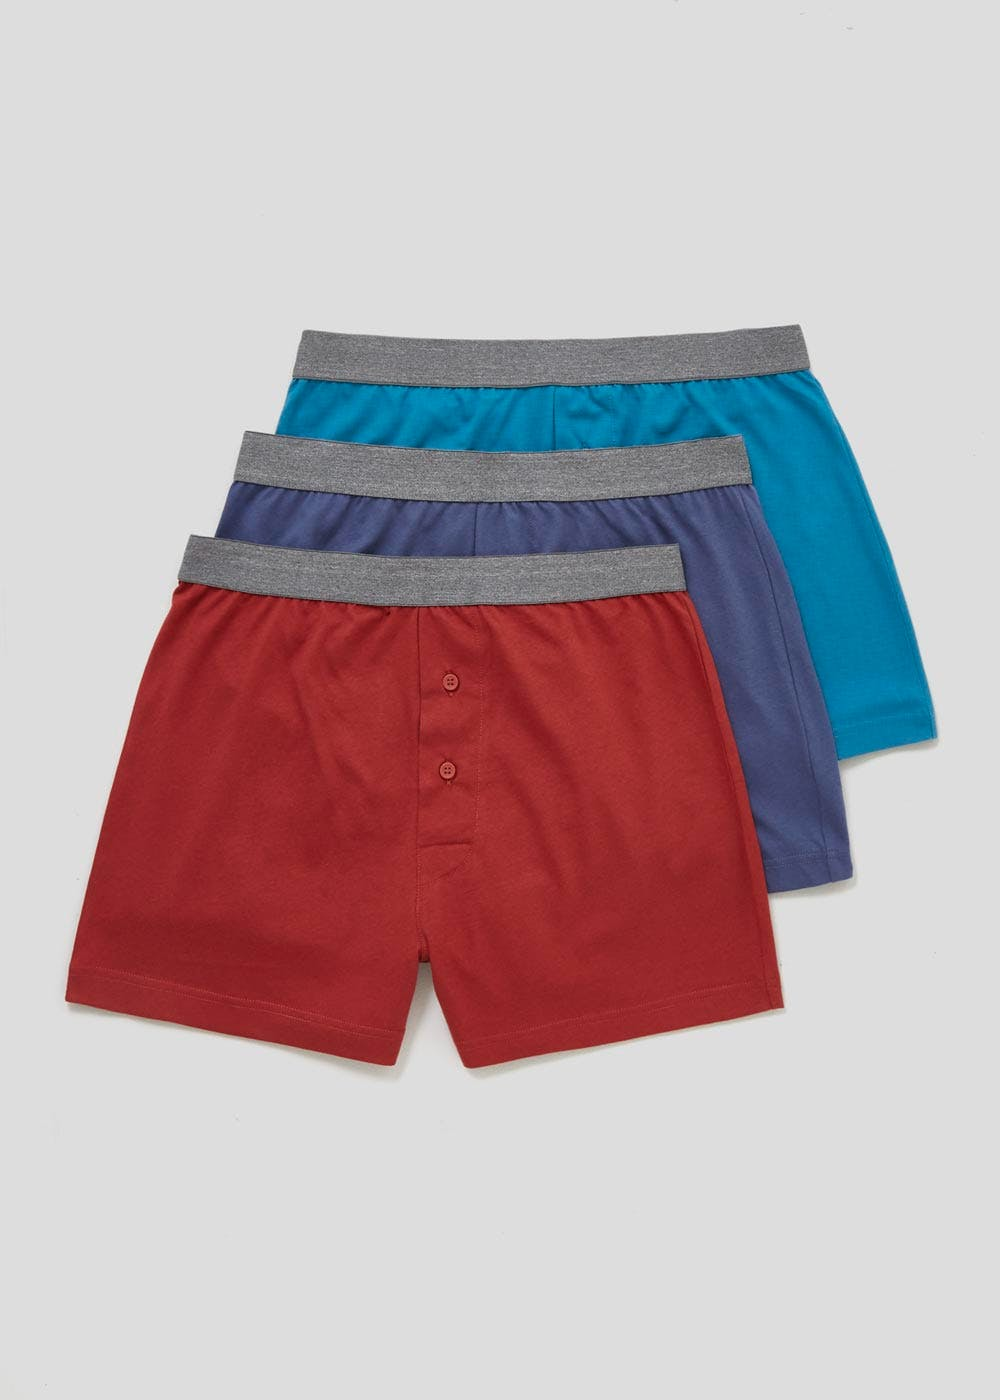 7596a3be03b450 3 Pack Loose Fit Boxers – Multi – Matalan